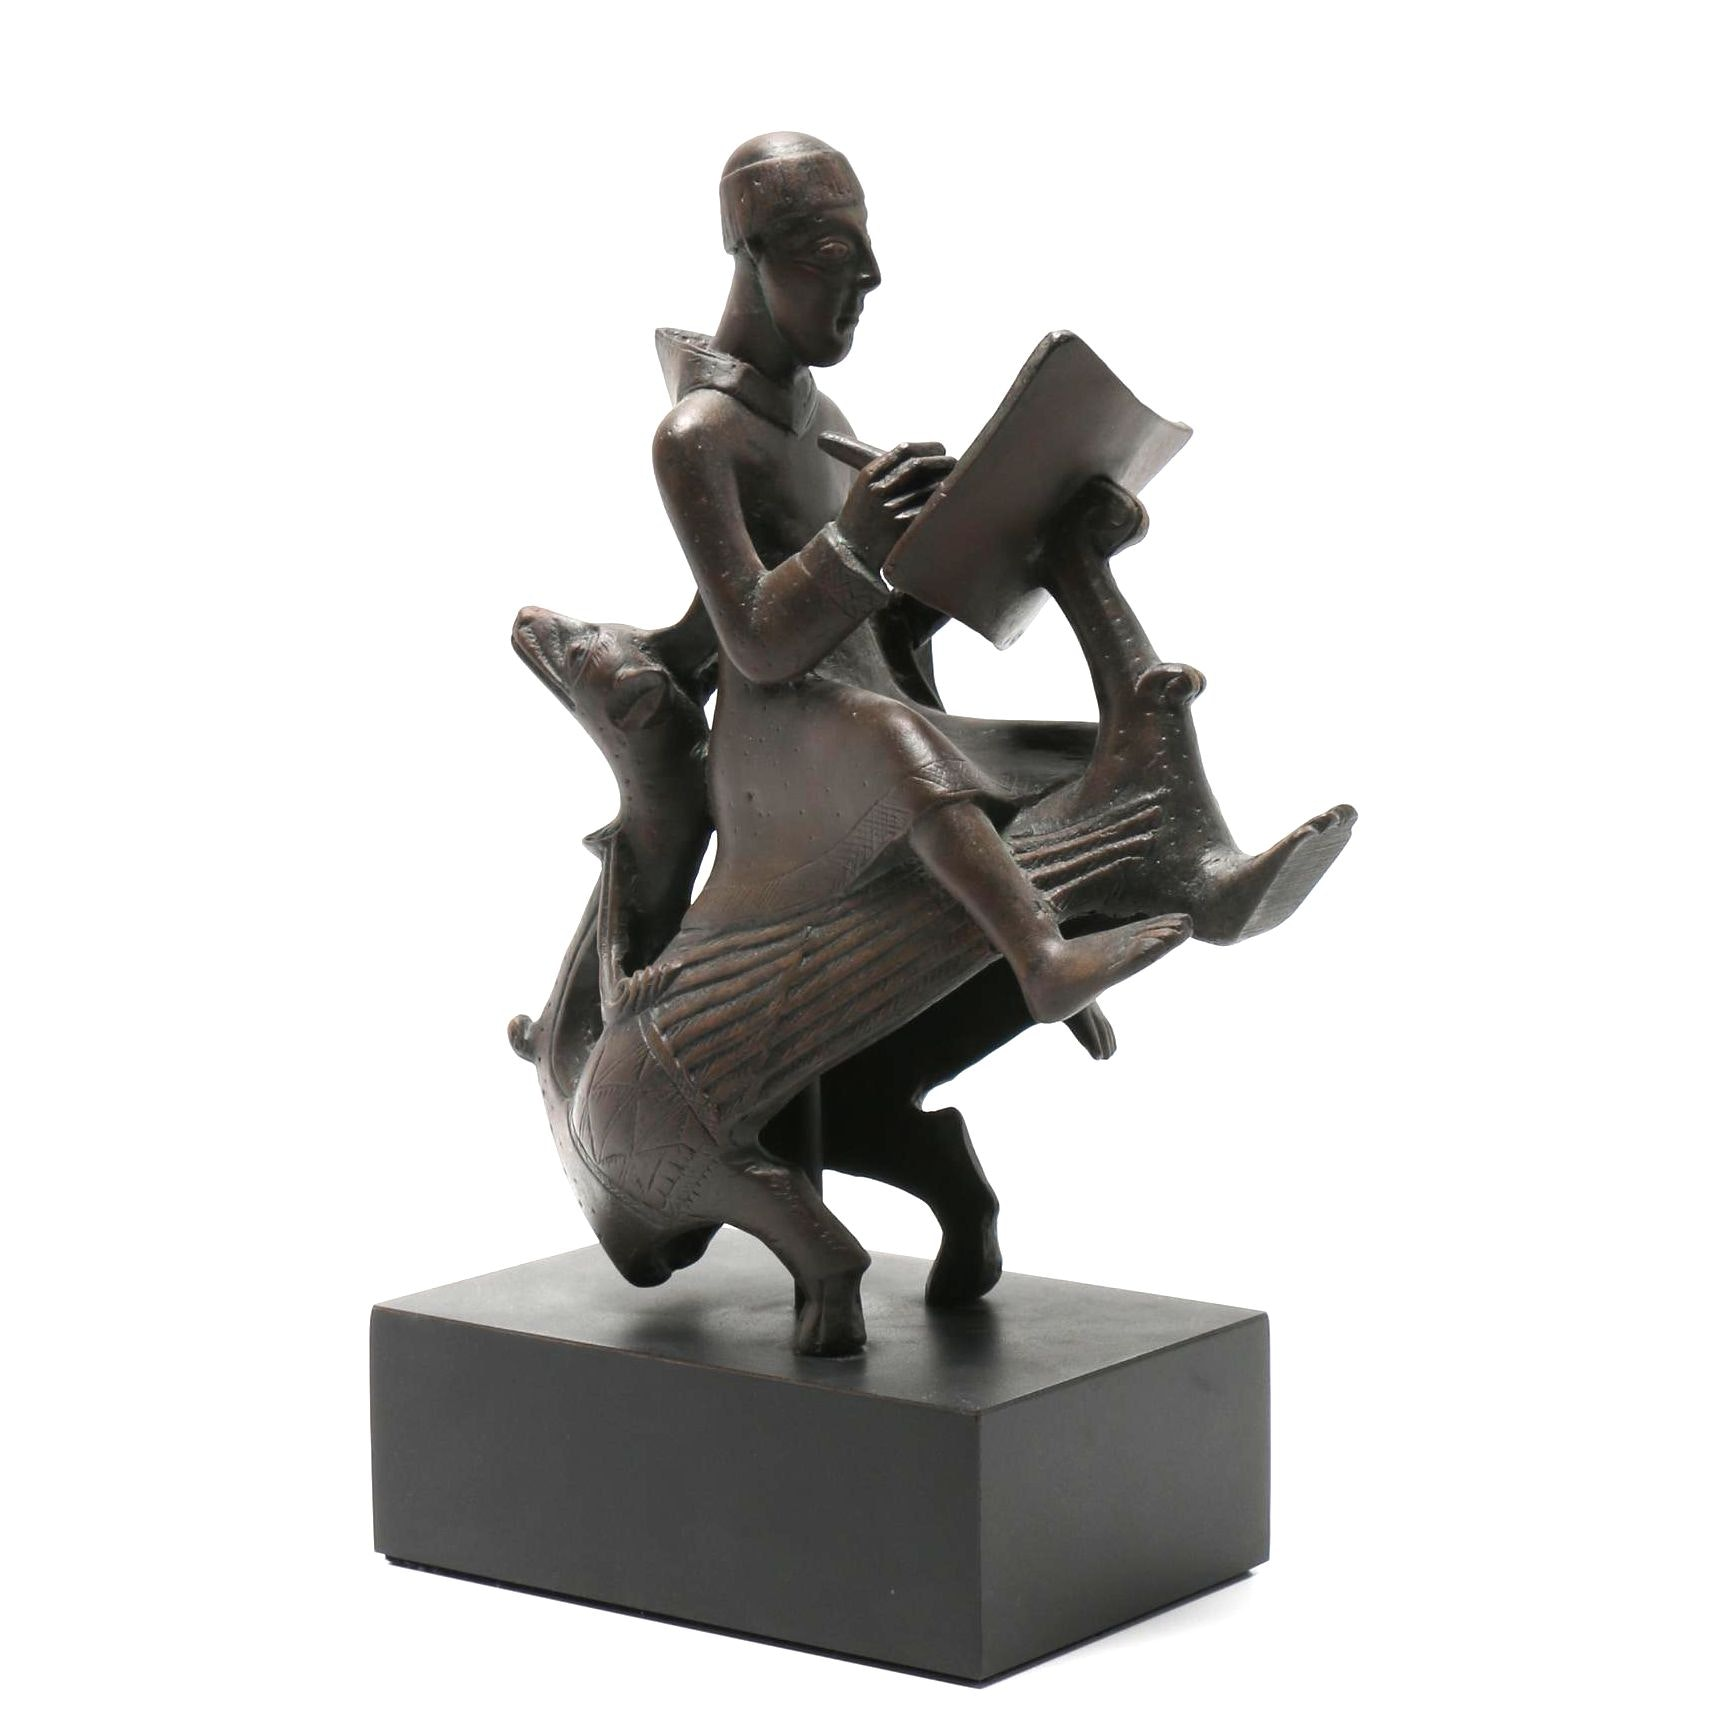 Replica Statue of Monk-Scribe Riding a Wyvern